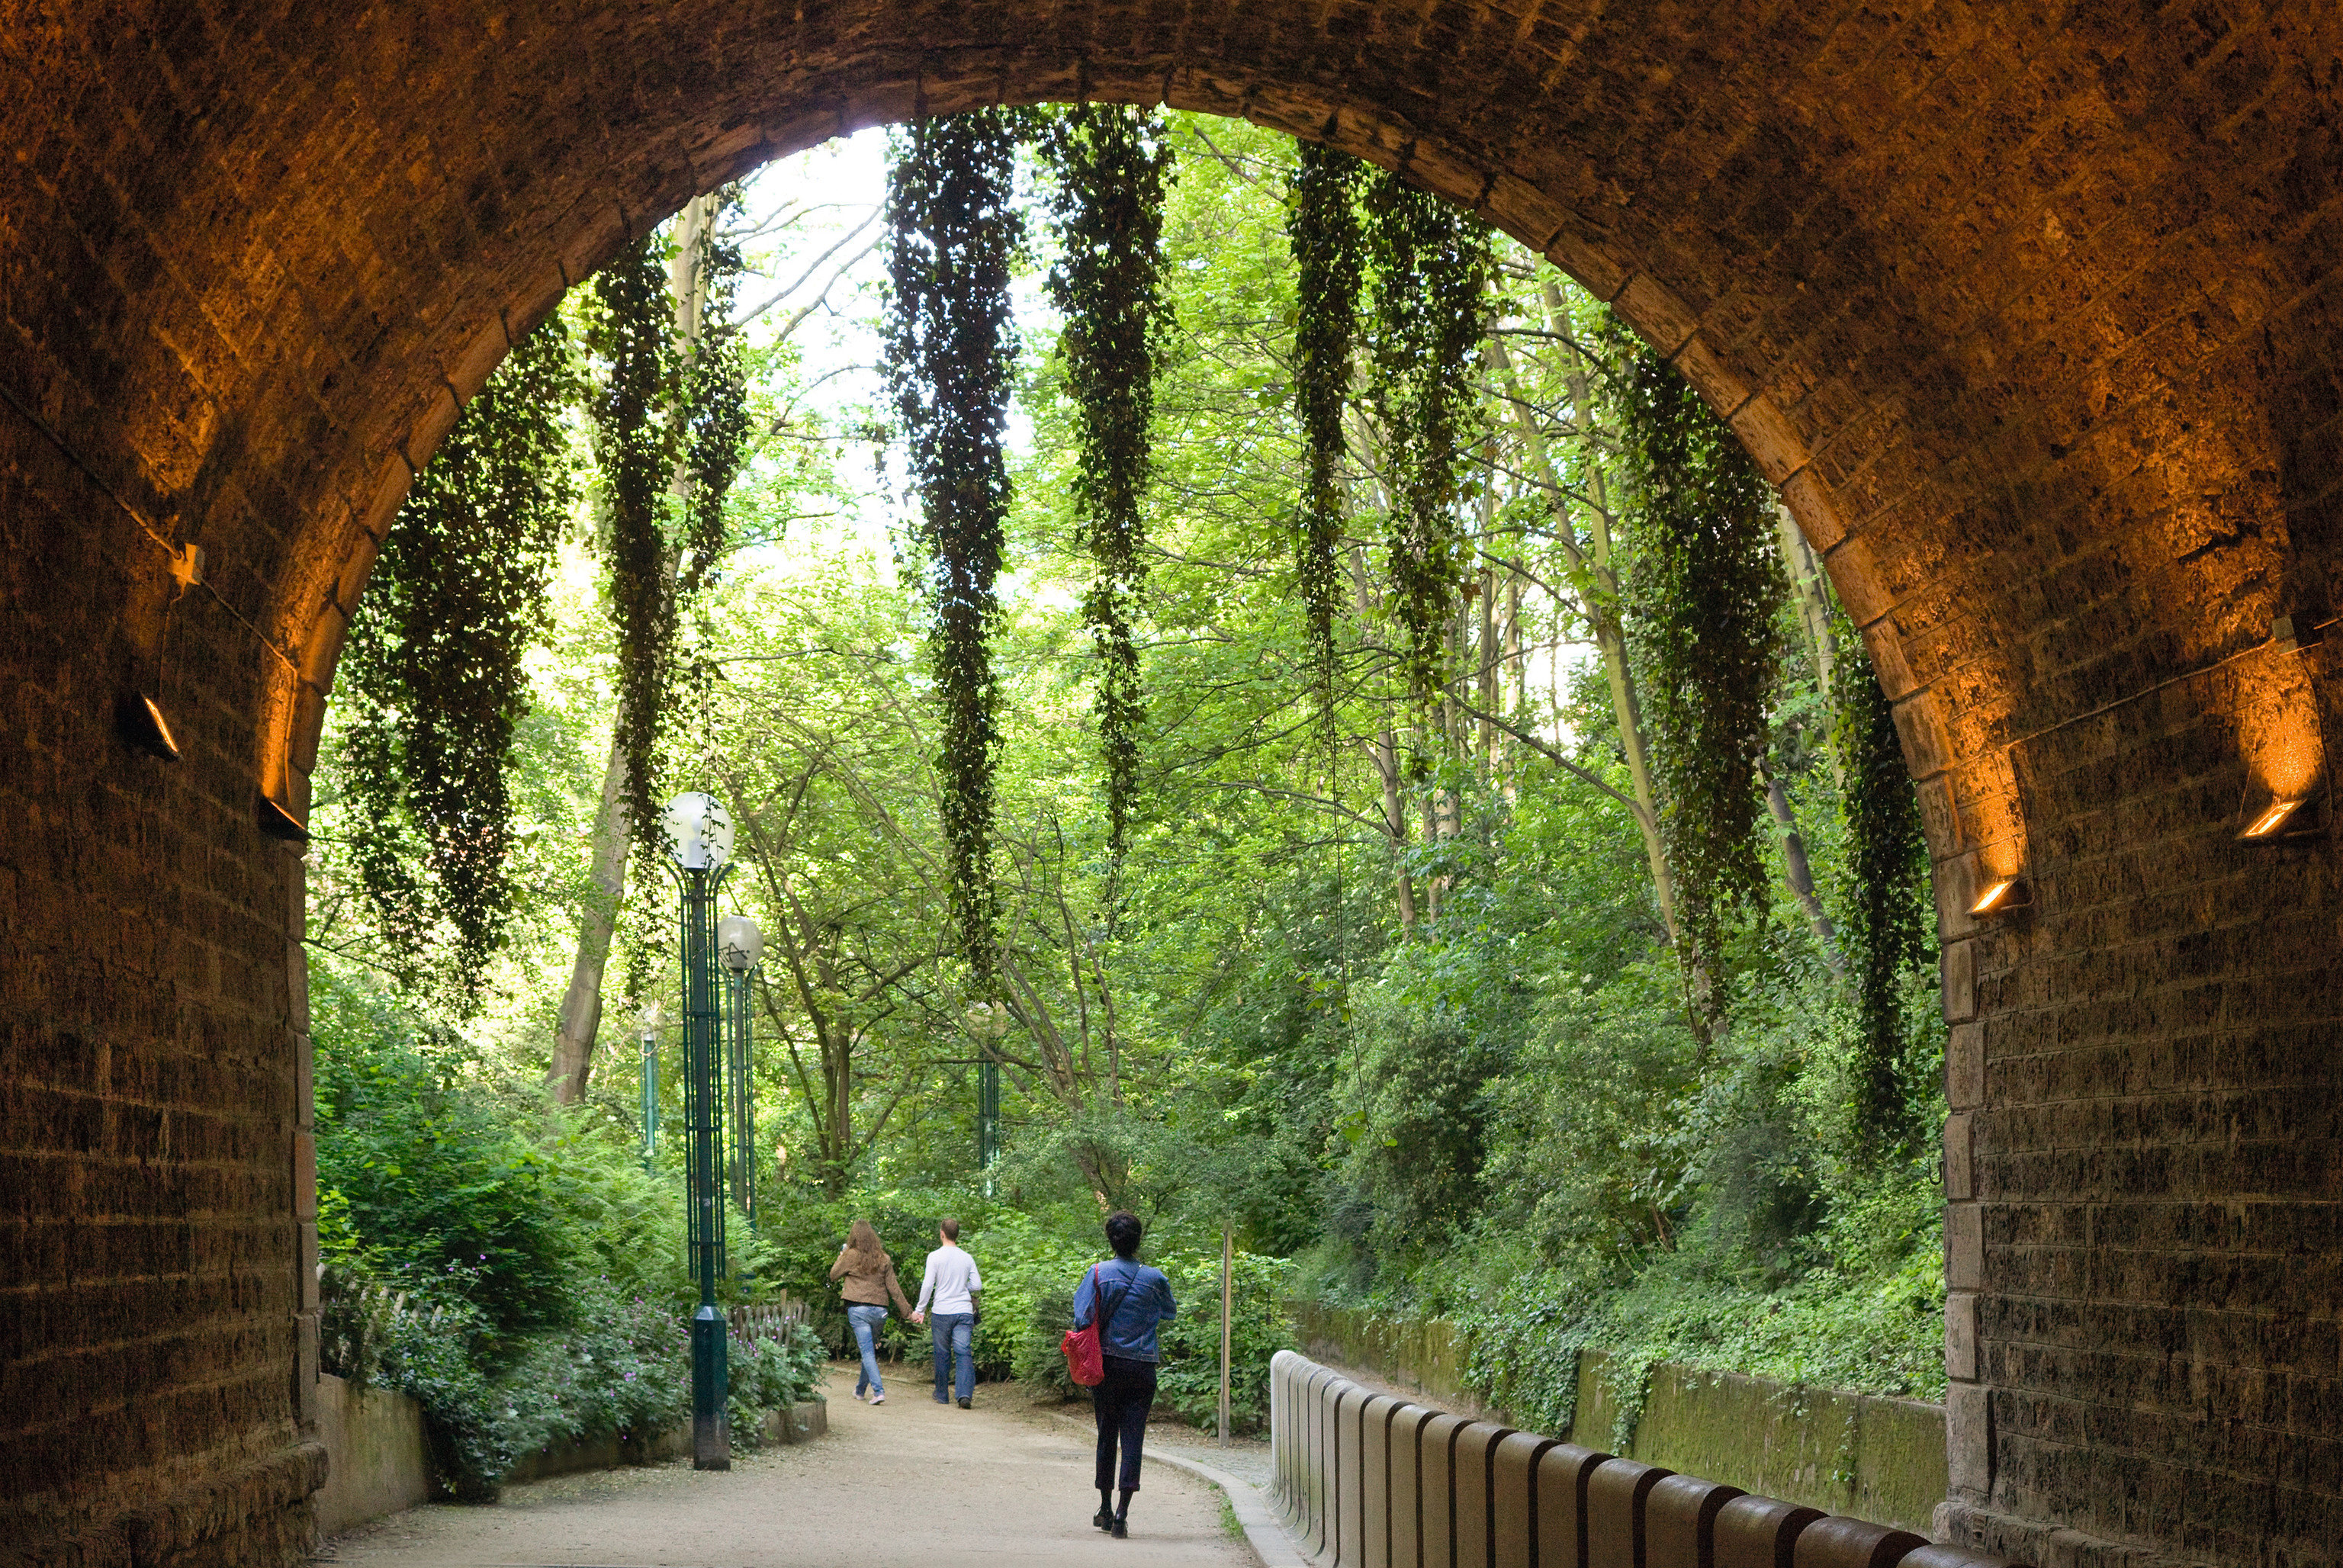 Budget Jetsetter Guides outdoor arch building green tree Architecture brick tourism autumn monastery Garden flower ancient history abbey waterway stone place of worship walkway colonnade